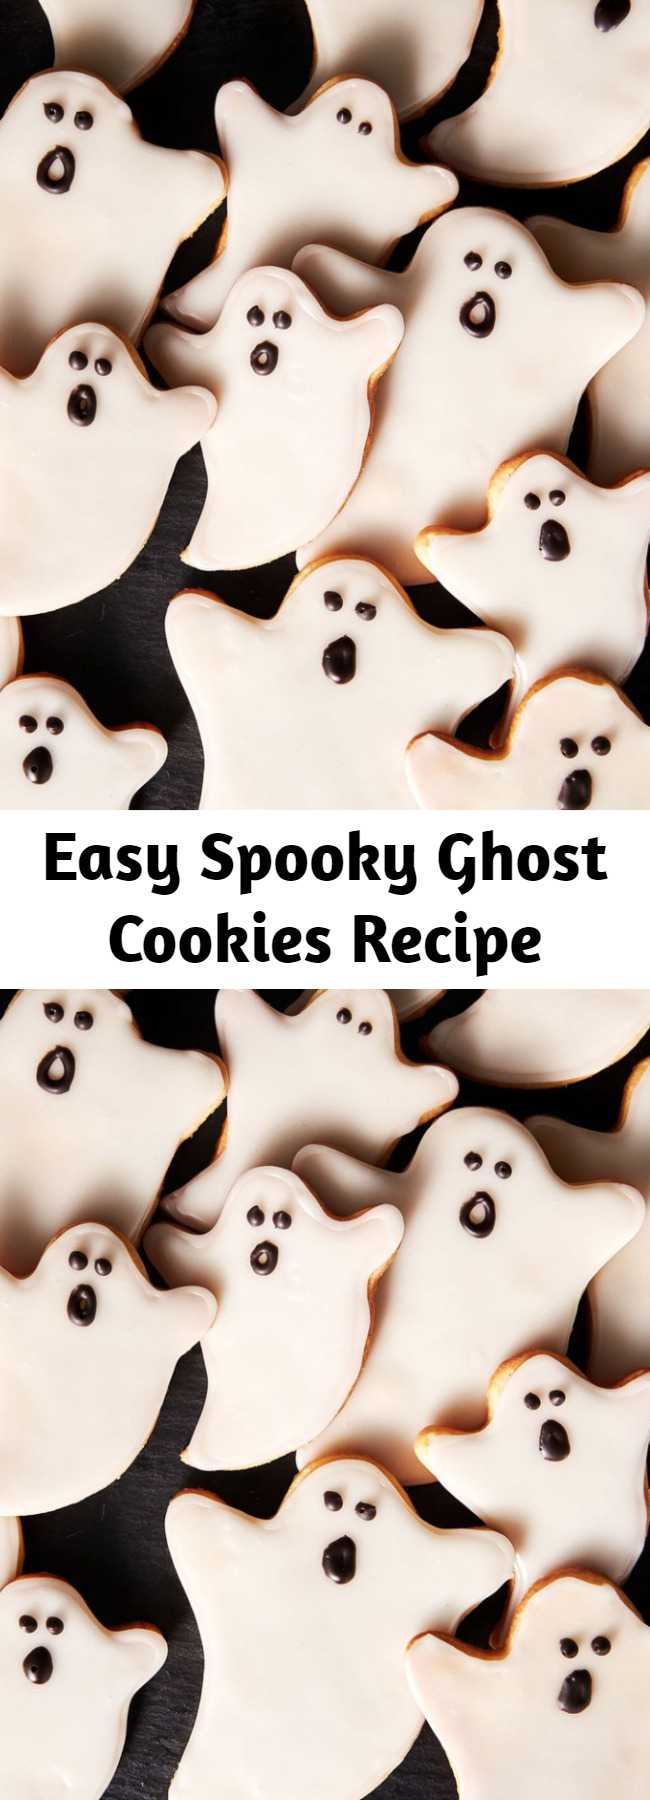 Easy Spooky Ghost Cookies Recipe - The best way to never be afraid of ghosts? Turn them into cute little sugar cookies. These spooky ghosts will be a hit at every halloween party and are far easier to make then they look! Here's our best tips and tricks we have for decorating sugar cookies.